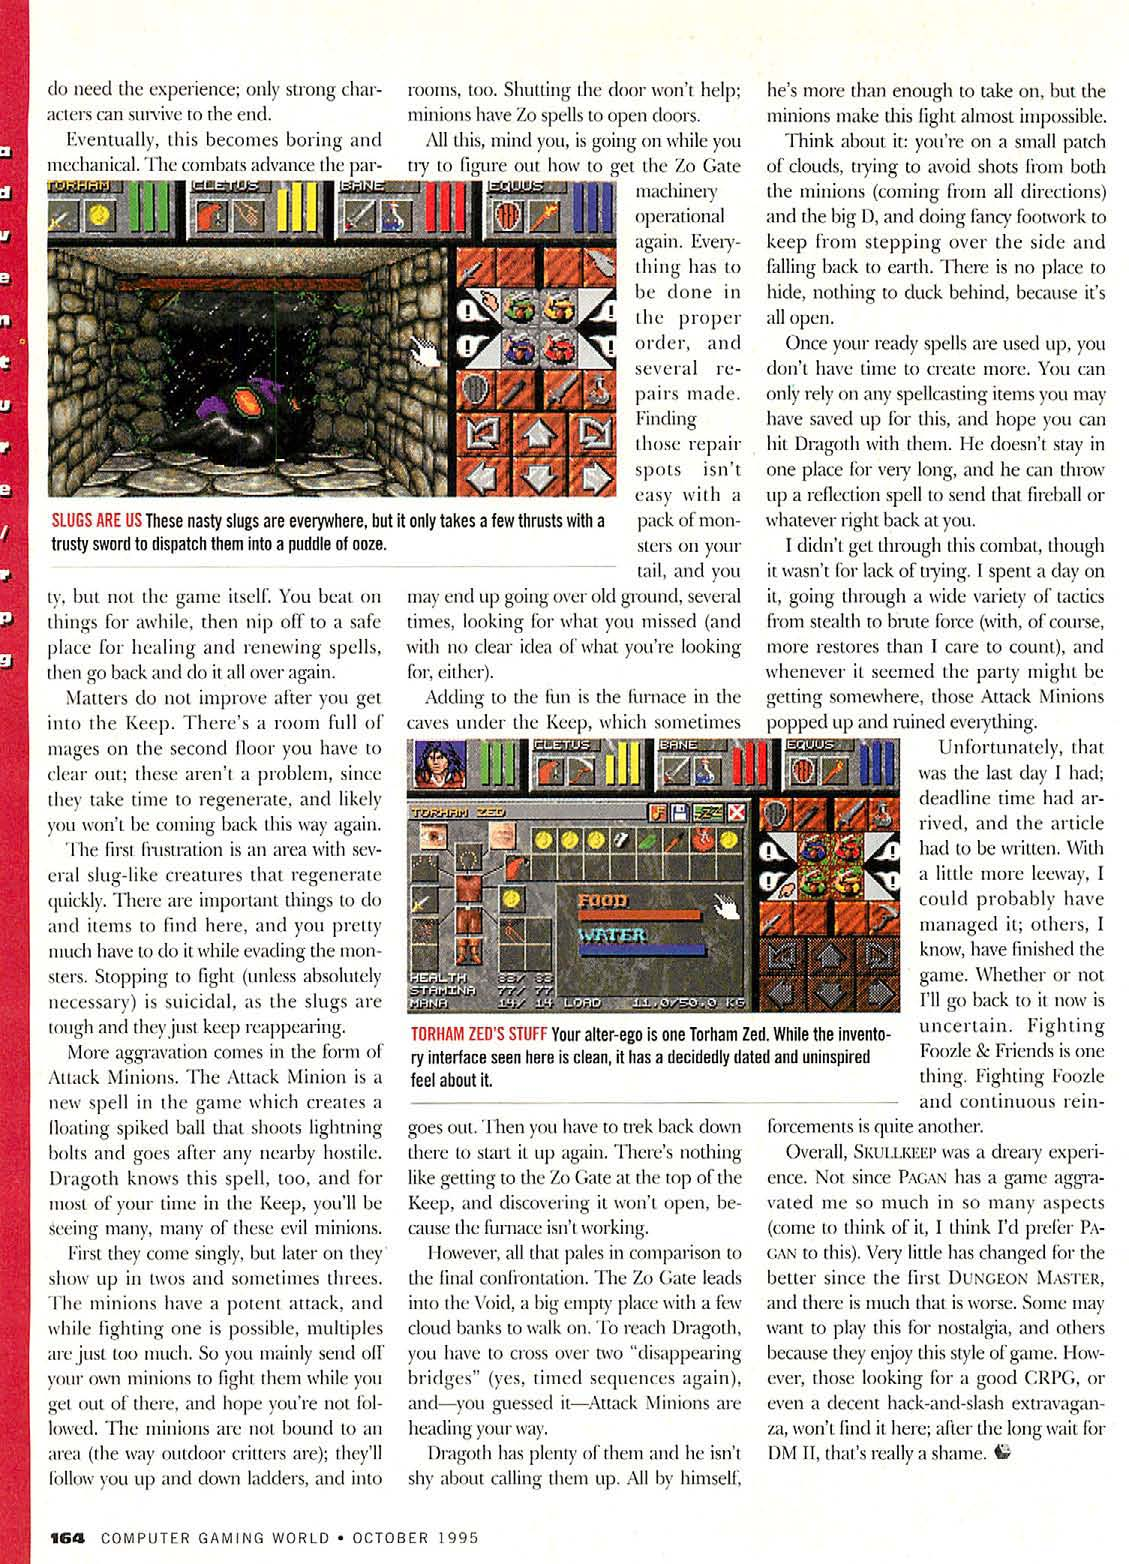 Dungeon Master II for PC Review published in American magazine 'Computer Gaming World', Issue #135 October 1995, Page 164